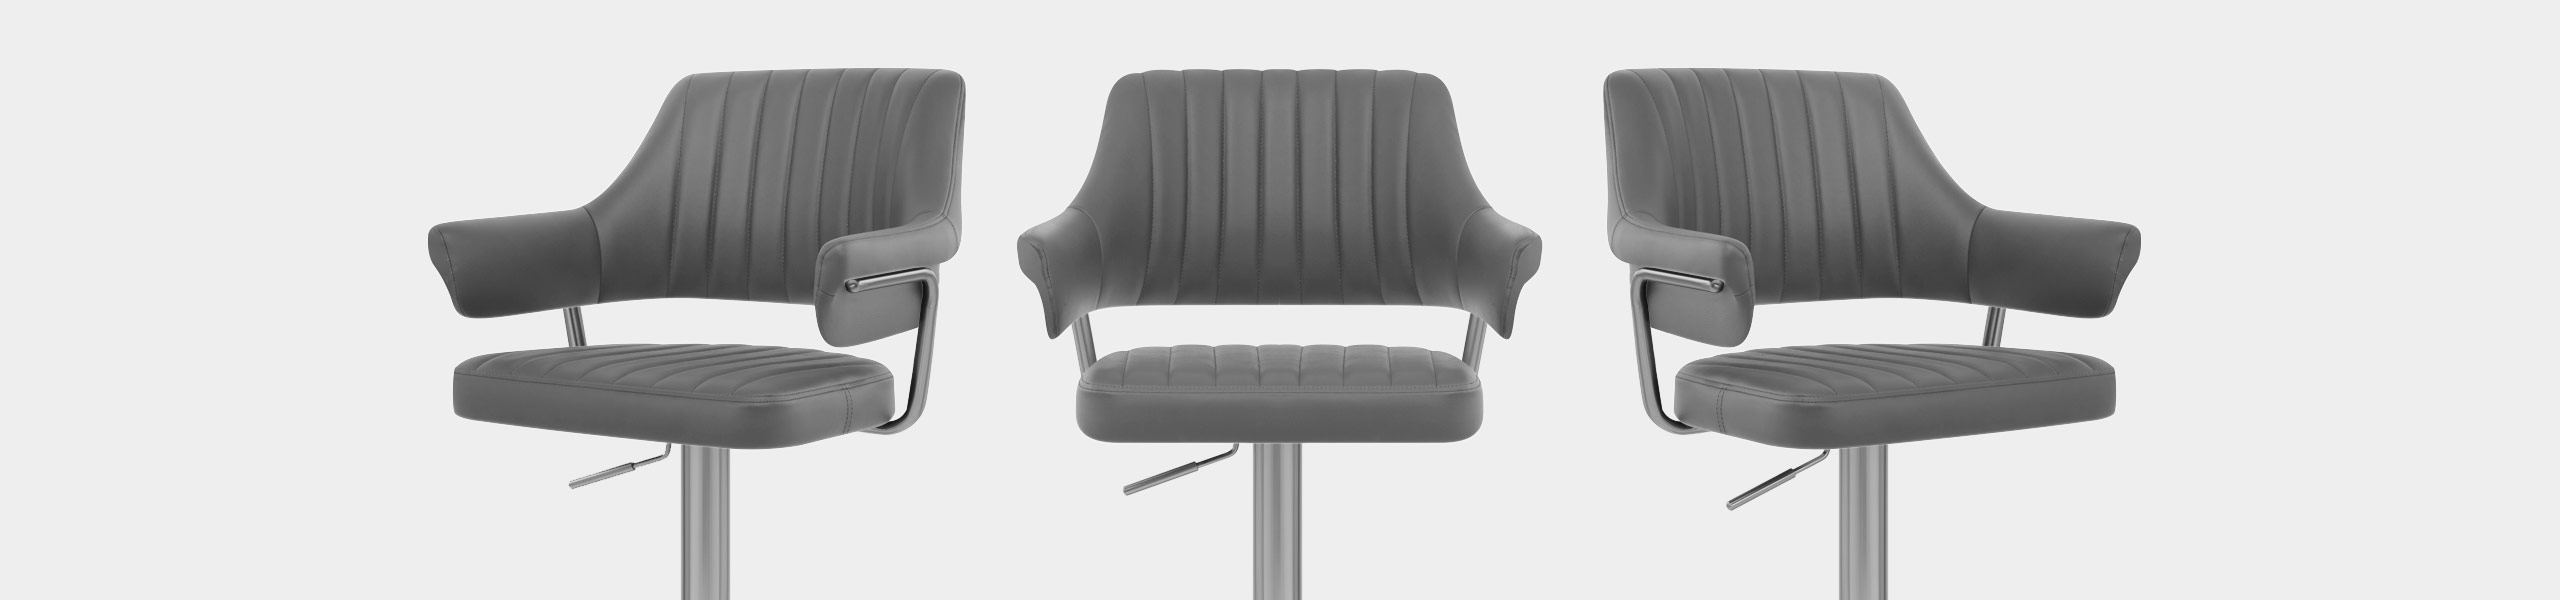 Skyline Brushed Bar Stool Charcoal Video Banner